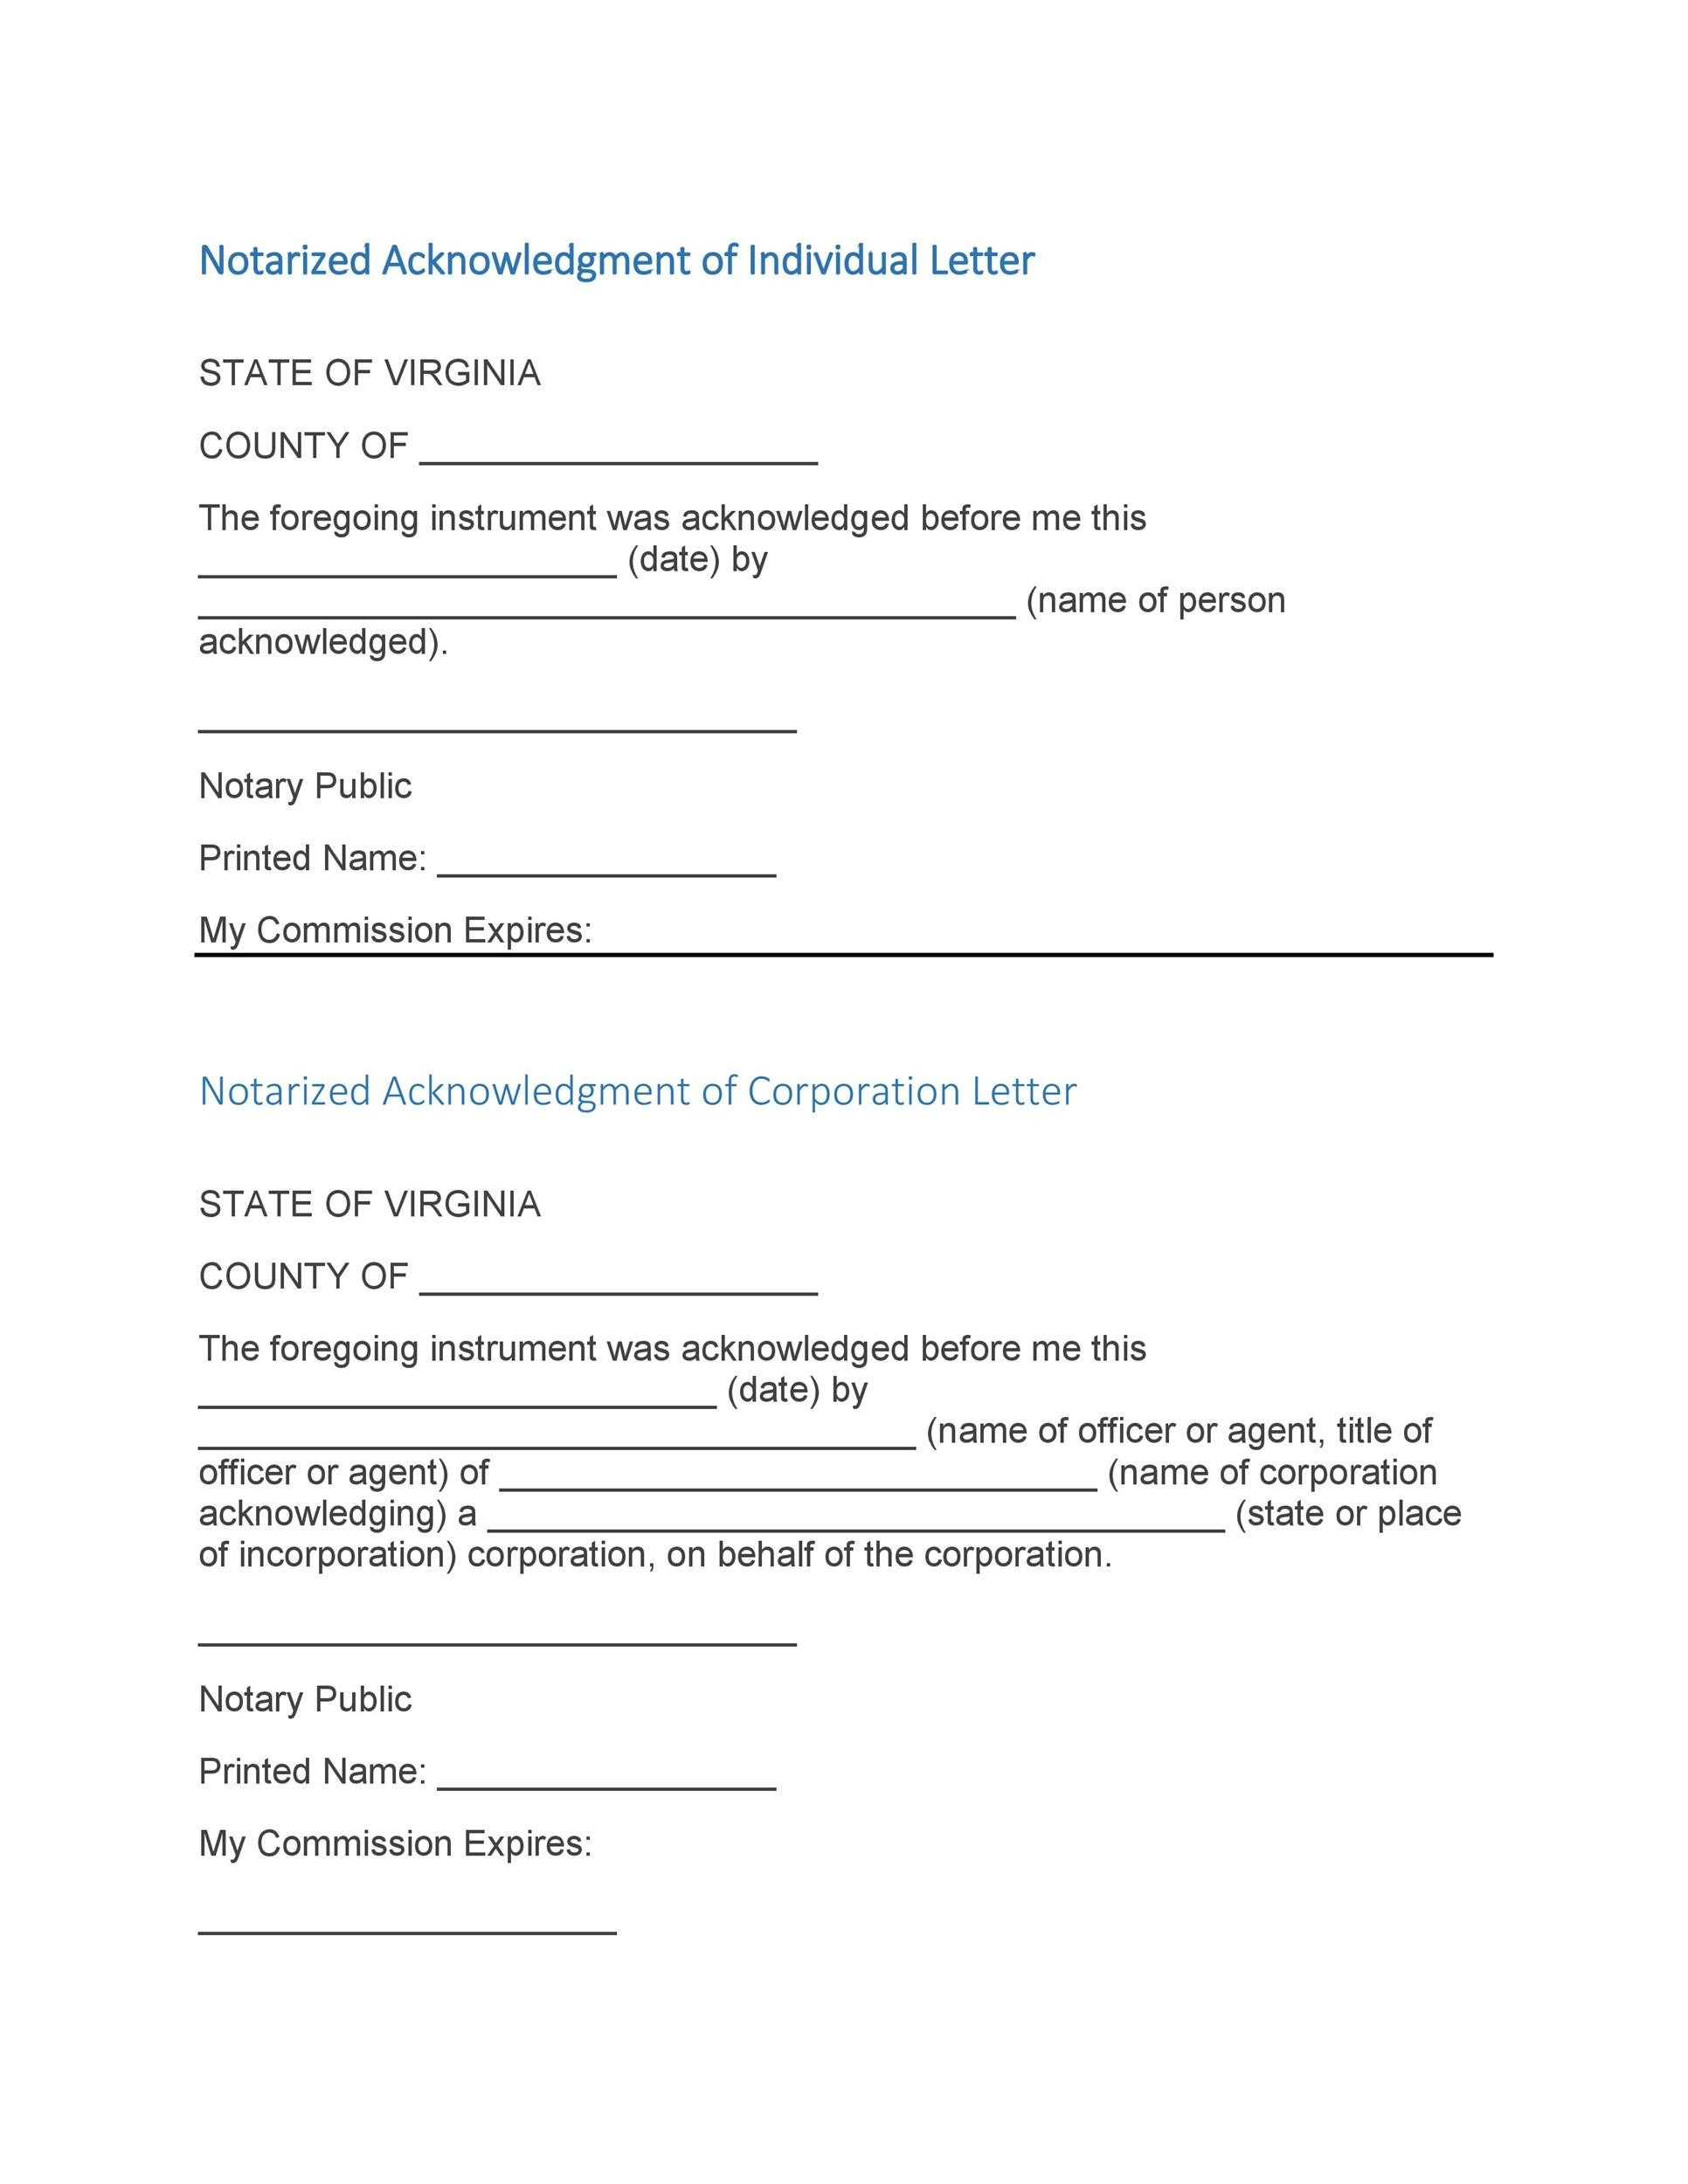 Free Notarized Letter Template 25